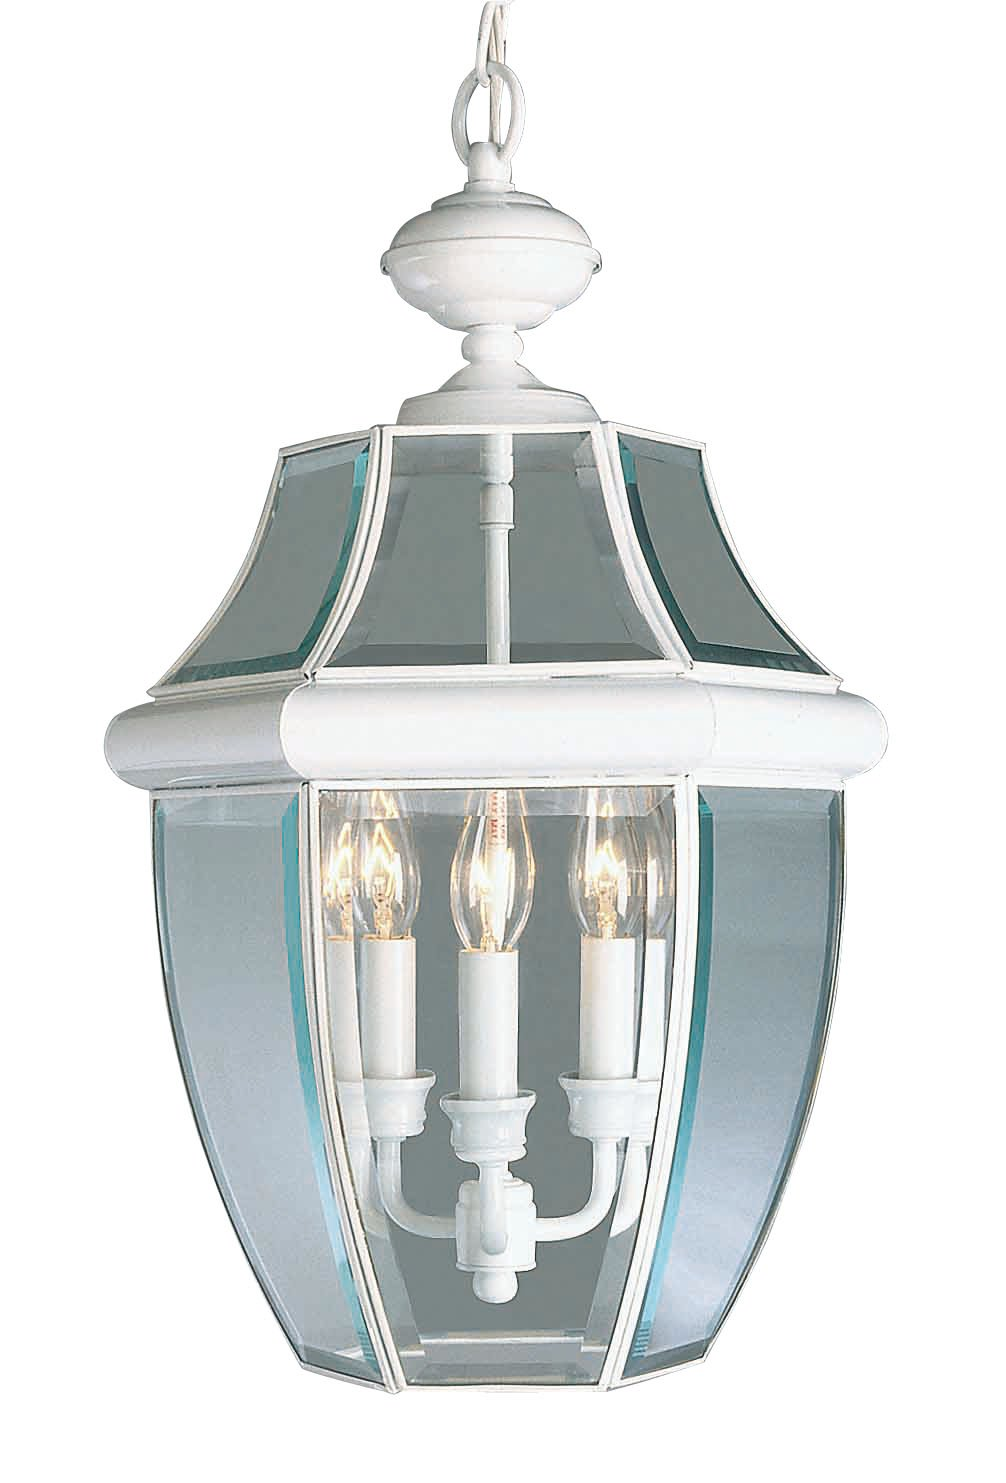 Livex Lighting 2355-03 Monterey 3-Light Outdoor Hanging Lantern, White